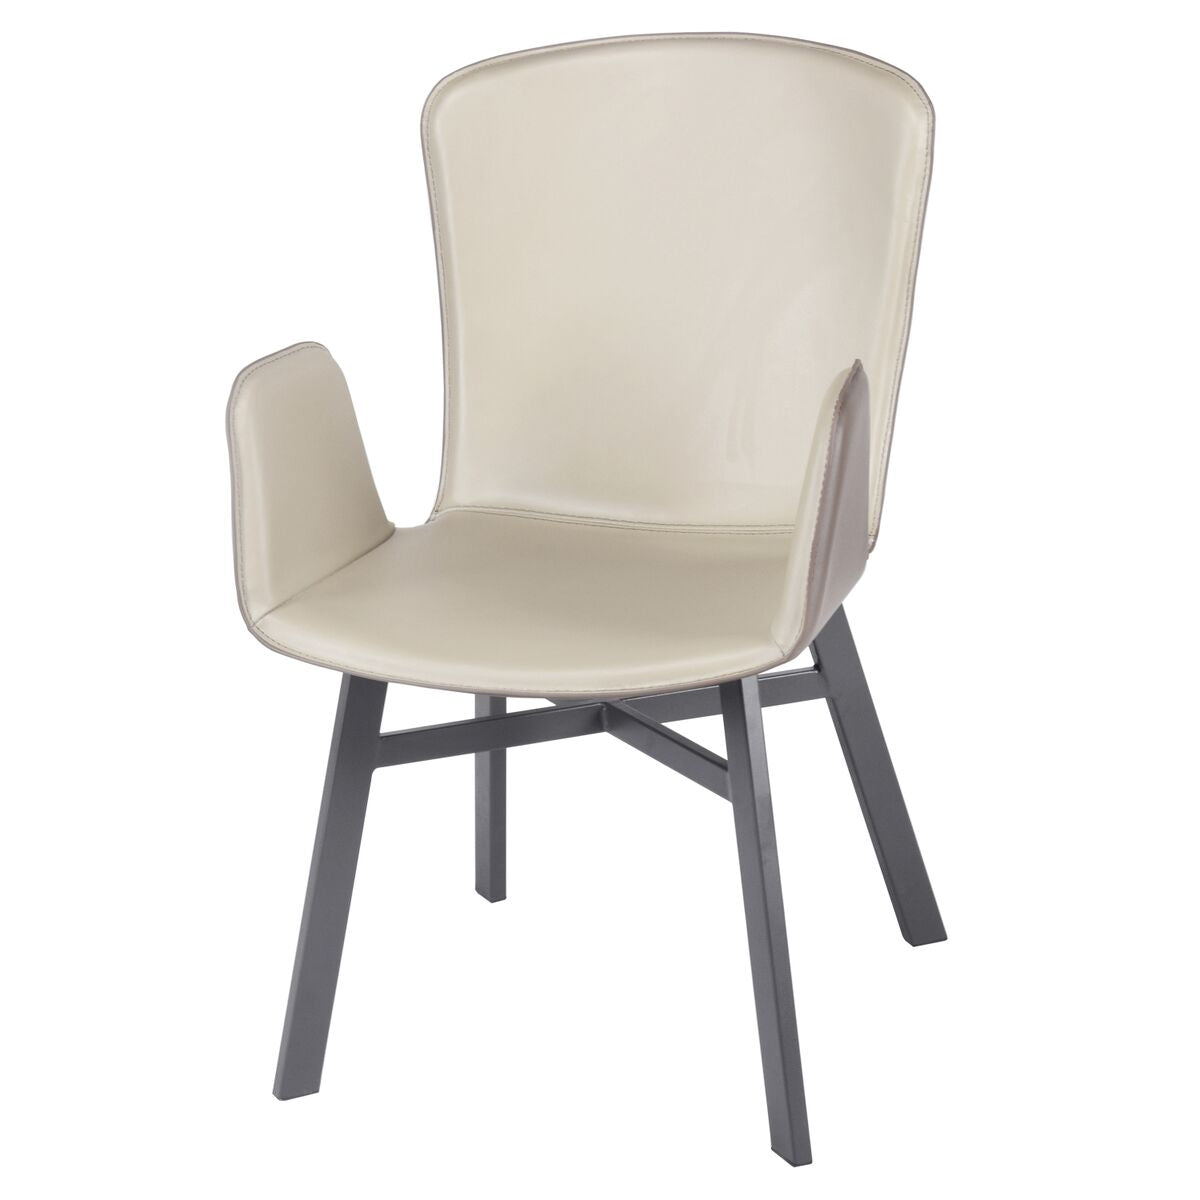 Unique Leatherette Guest or Conference Chair in Cool Ash Gray